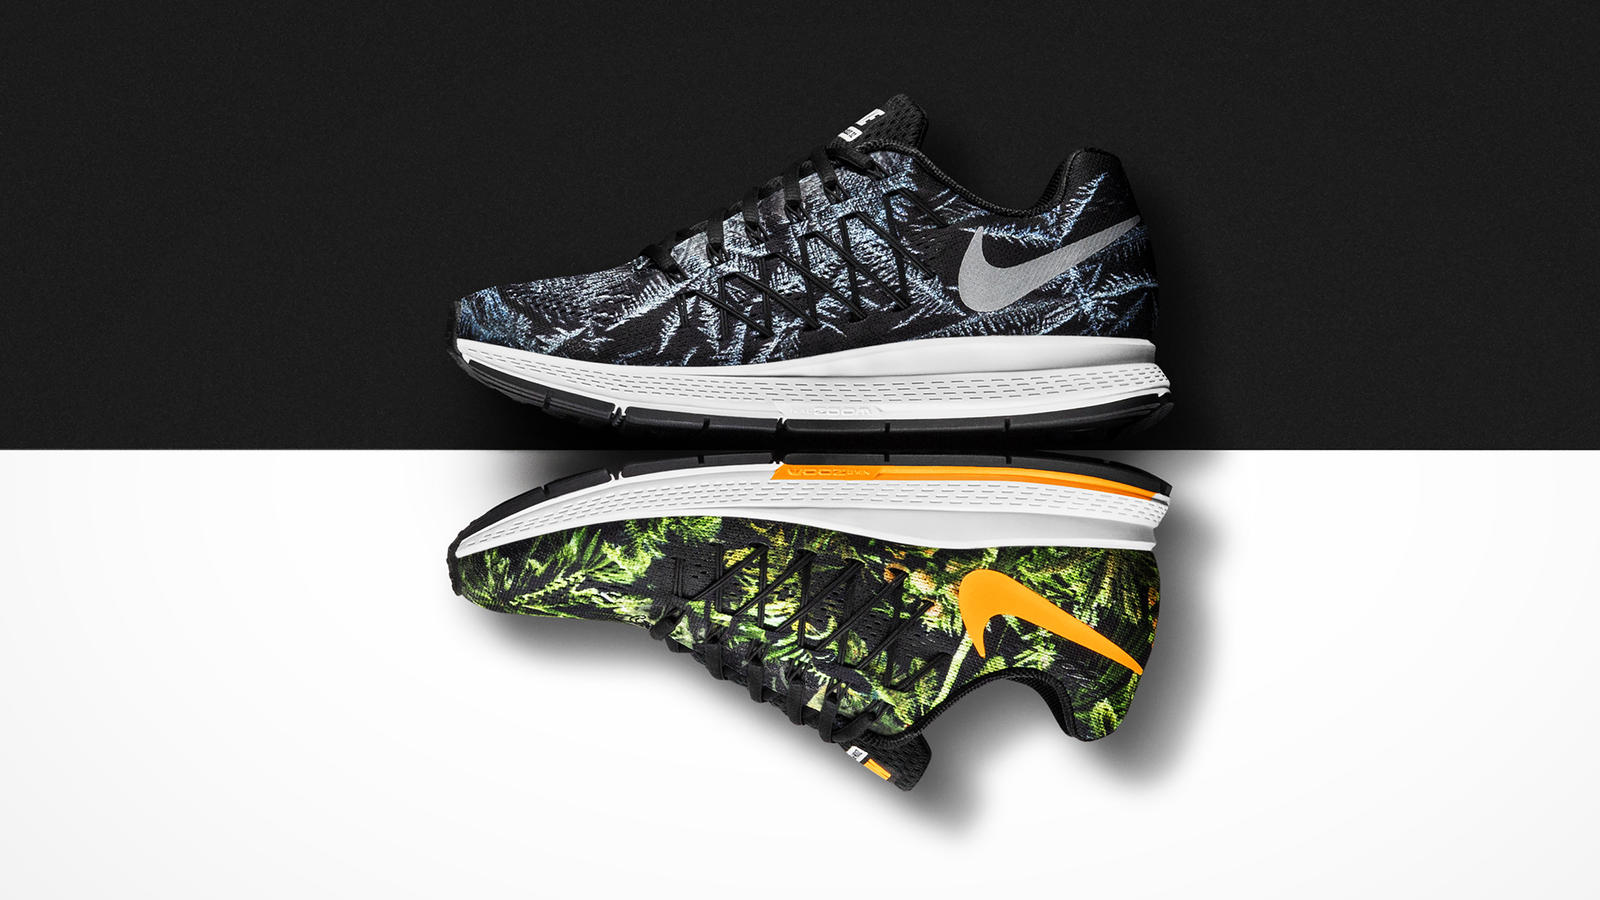 separation shoes 9f38a 92c5e Nike Solstice Pack - Nike News